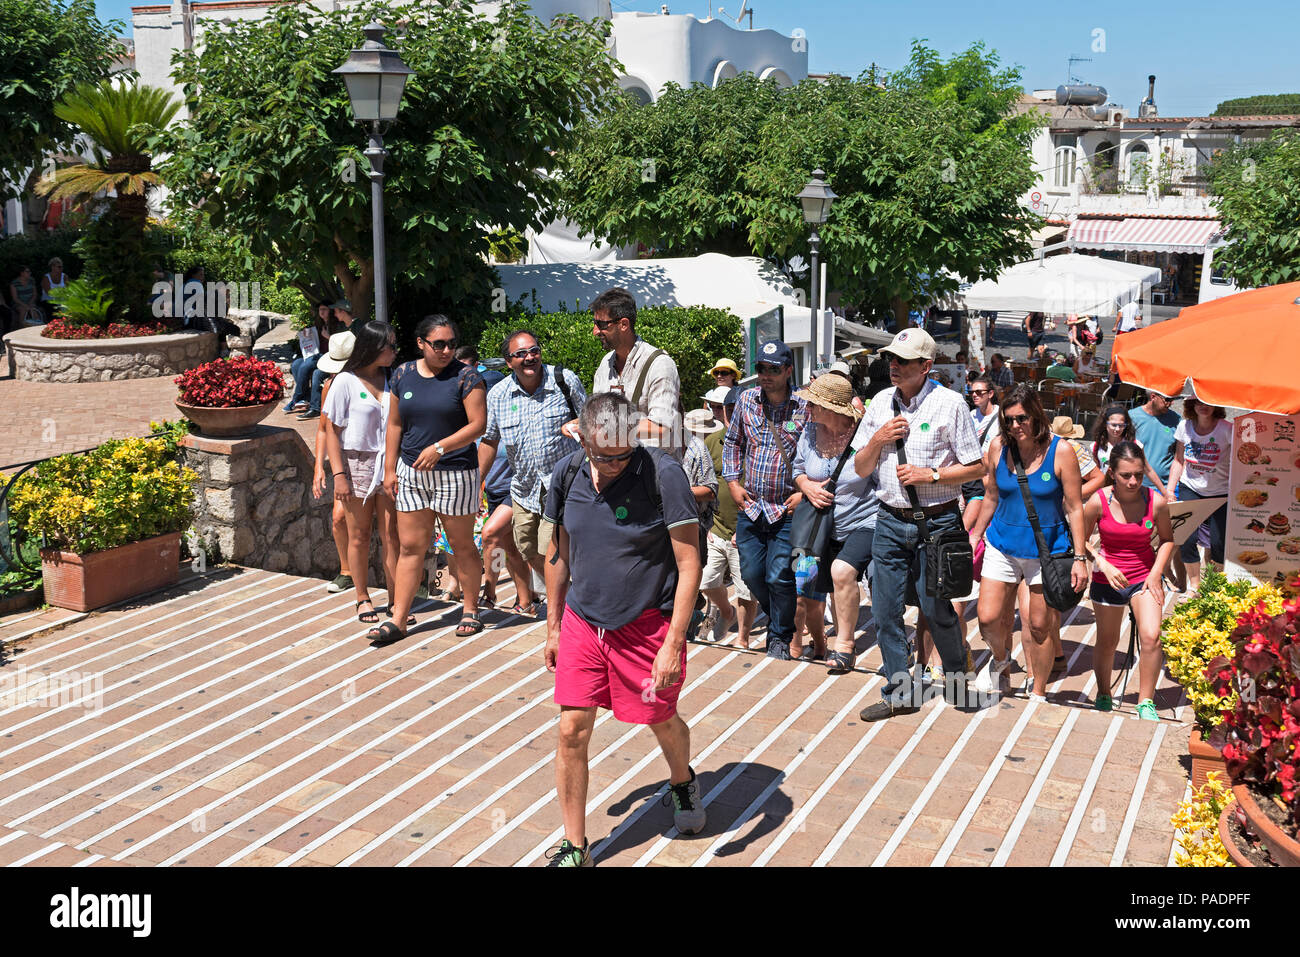 organised tour group, tourists, visitors in anacapri on the island of capri, italy. - Stock Image